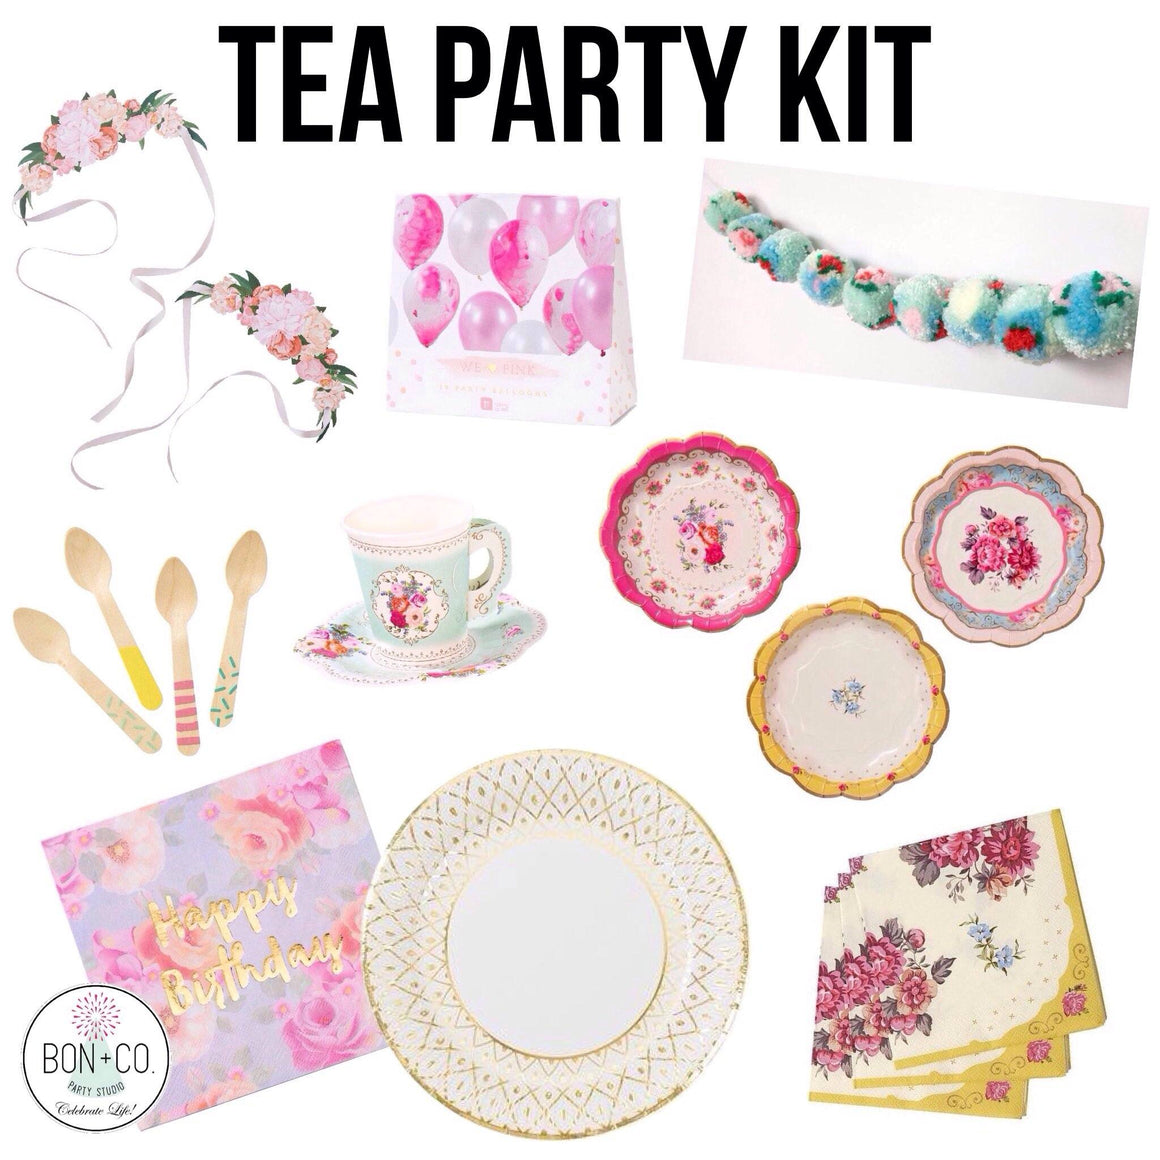 PARTY KIT - HIGH TEA PARTY